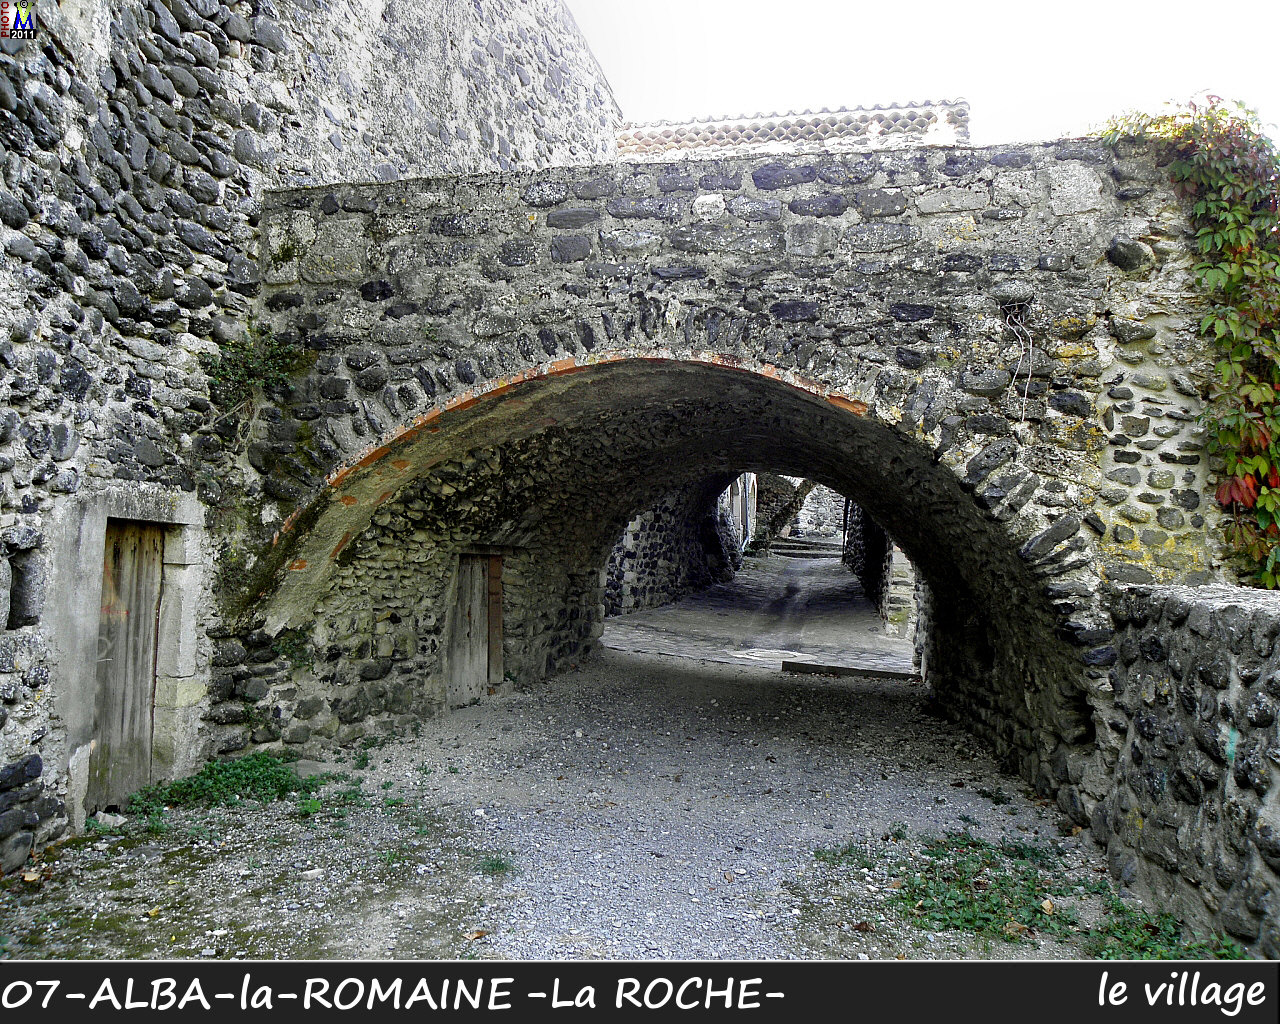 07ALBA-ROMAINEzROCHE_village_118.jpg